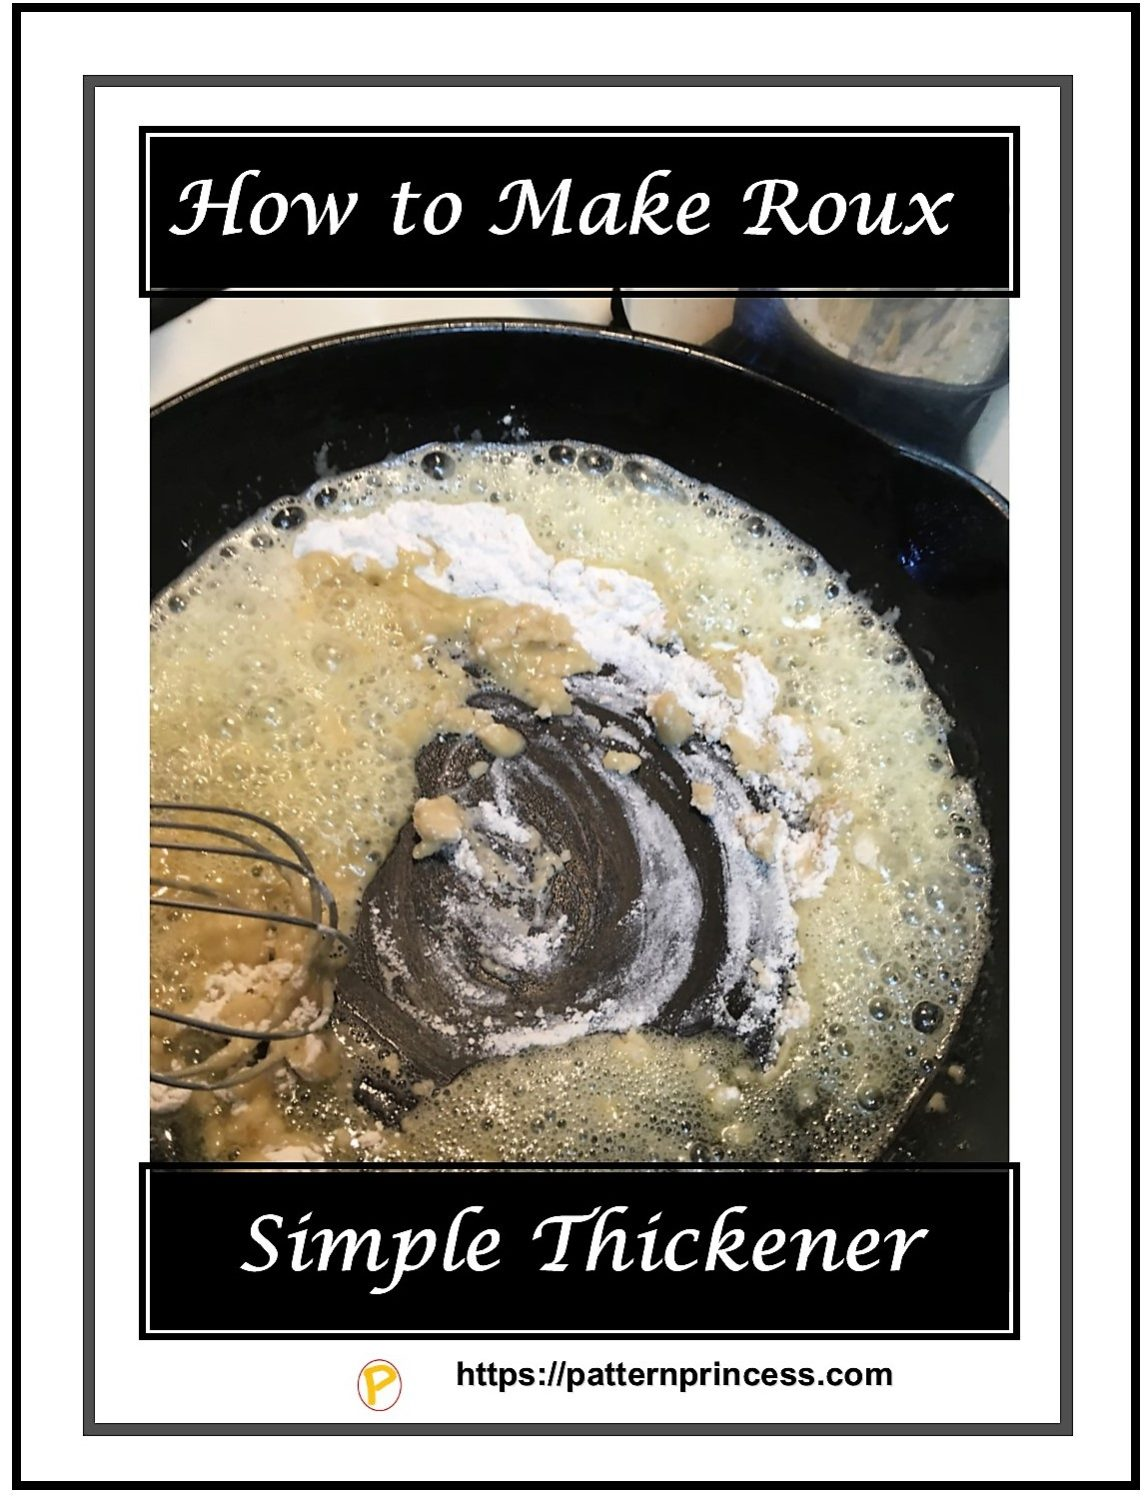 How to Make Roux 1